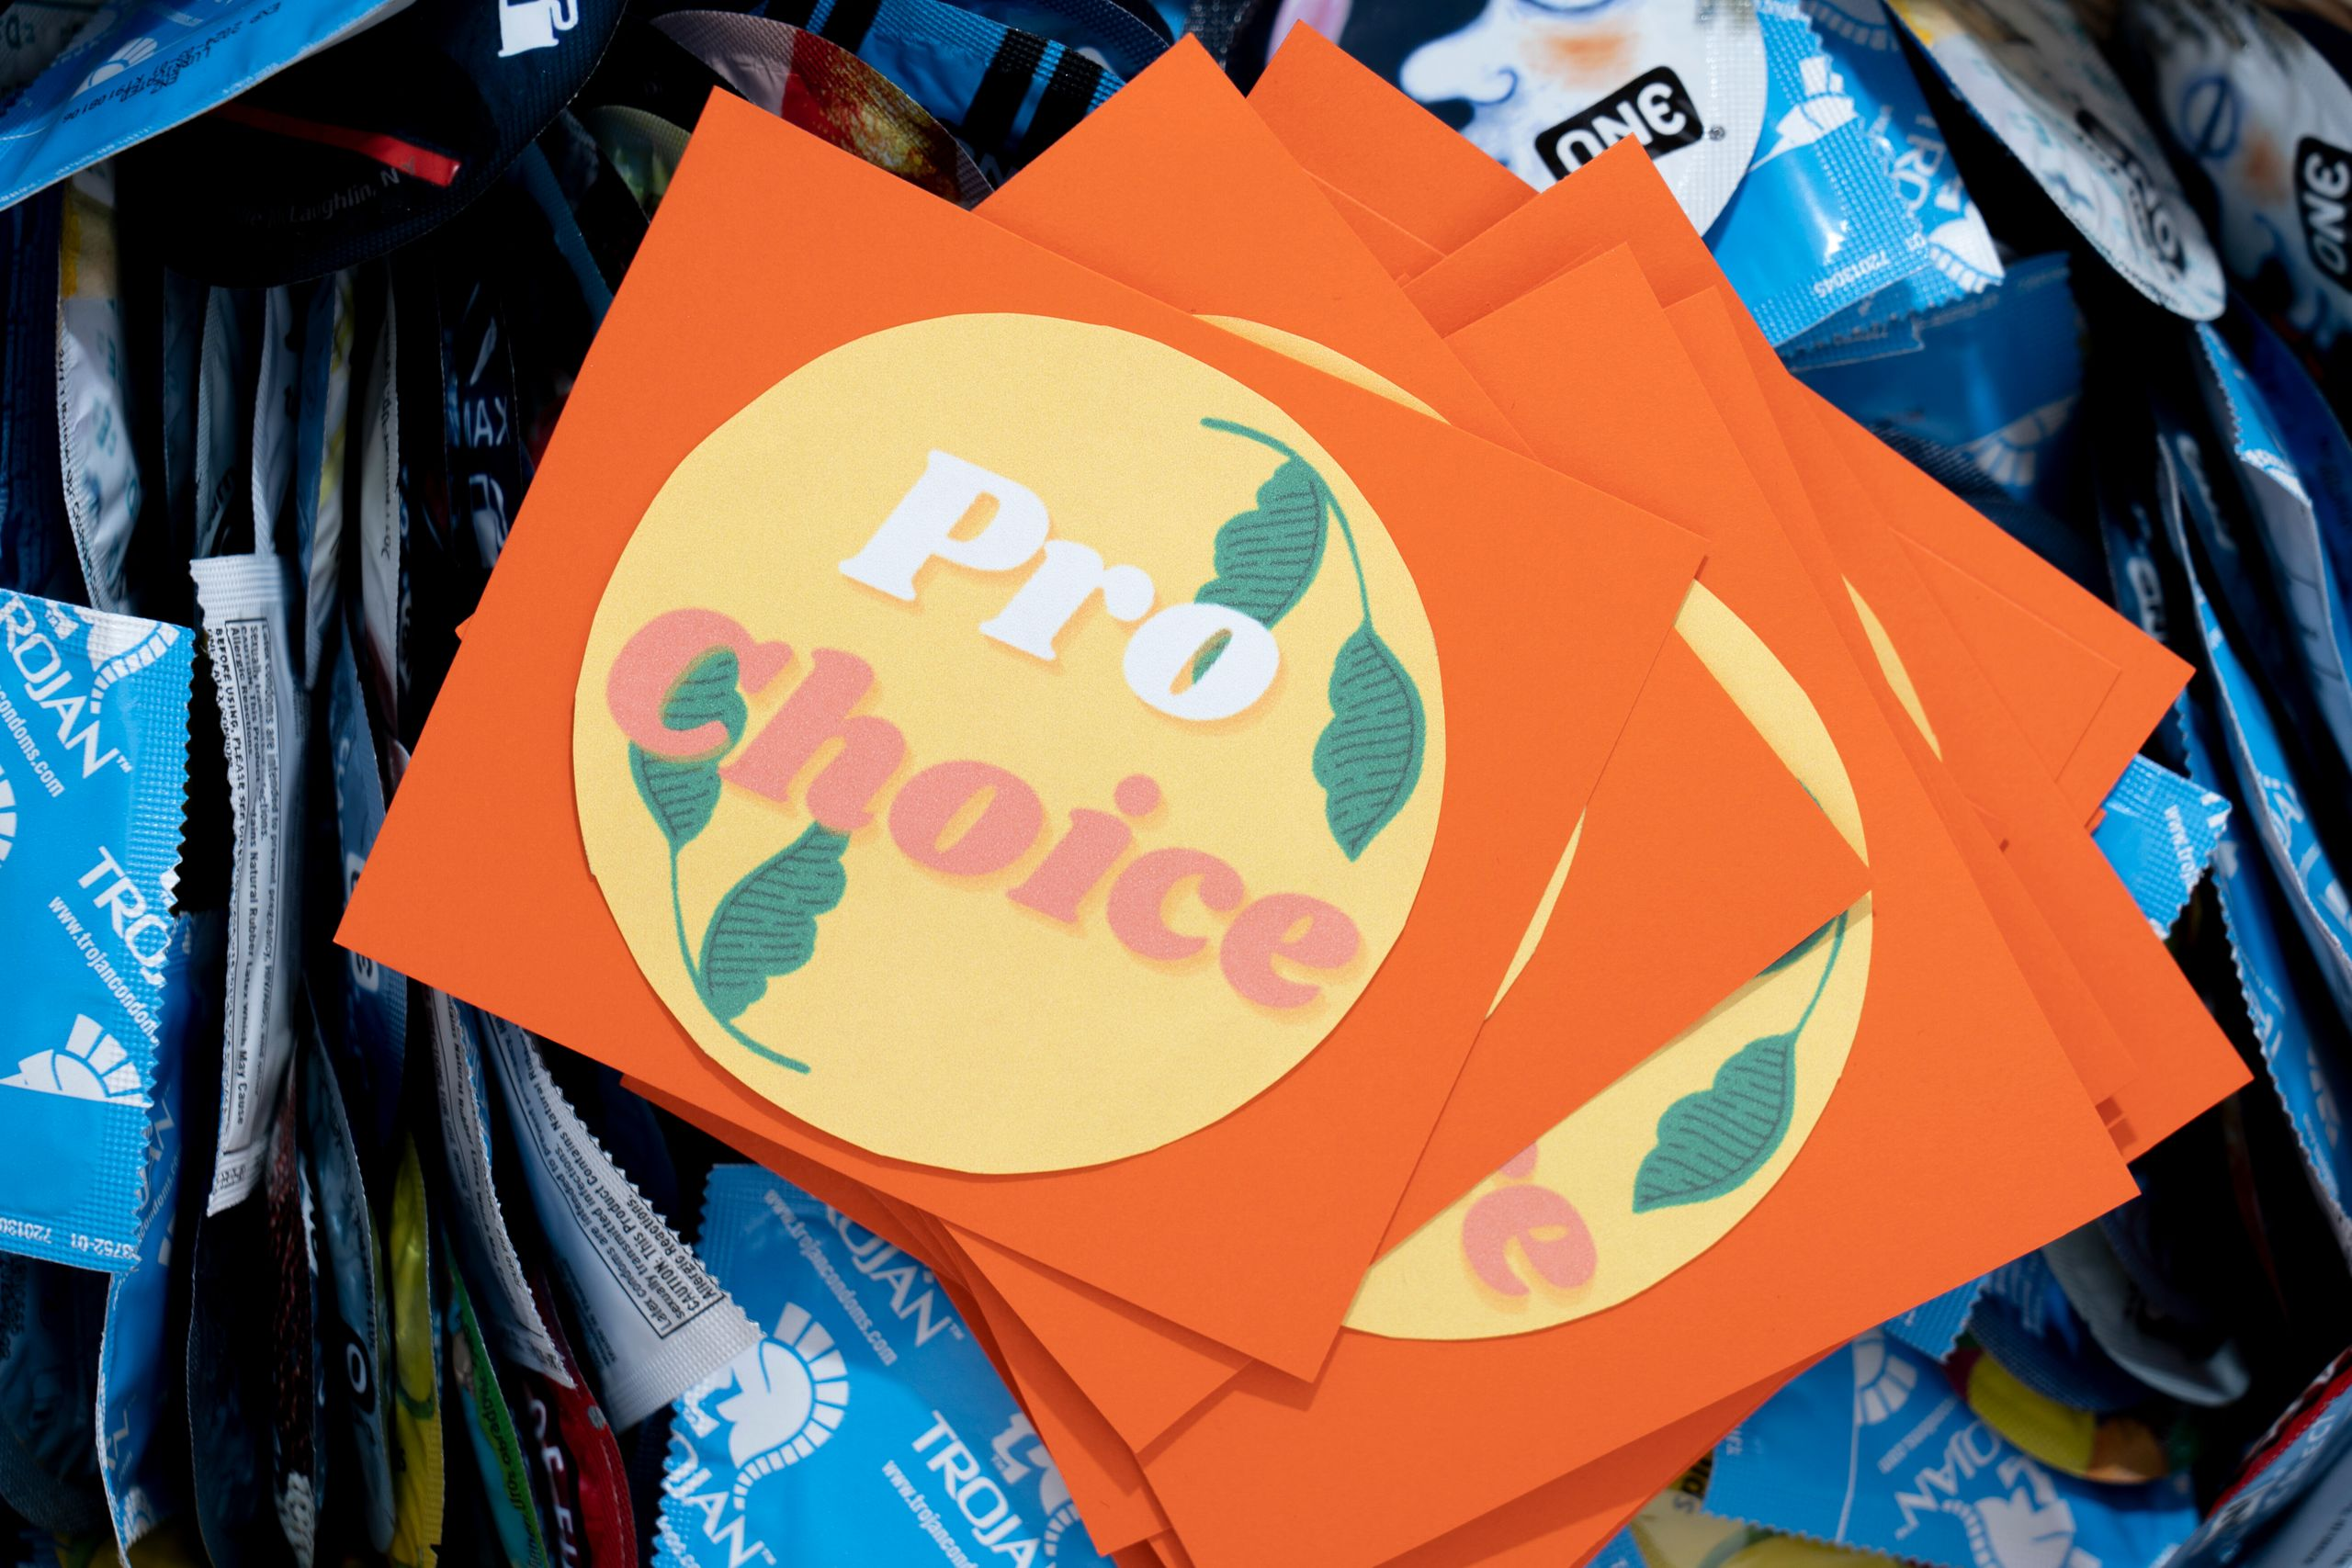 A pro-choice bumper sticker sits on a basket of condoms on campus at Saint Mary's College.